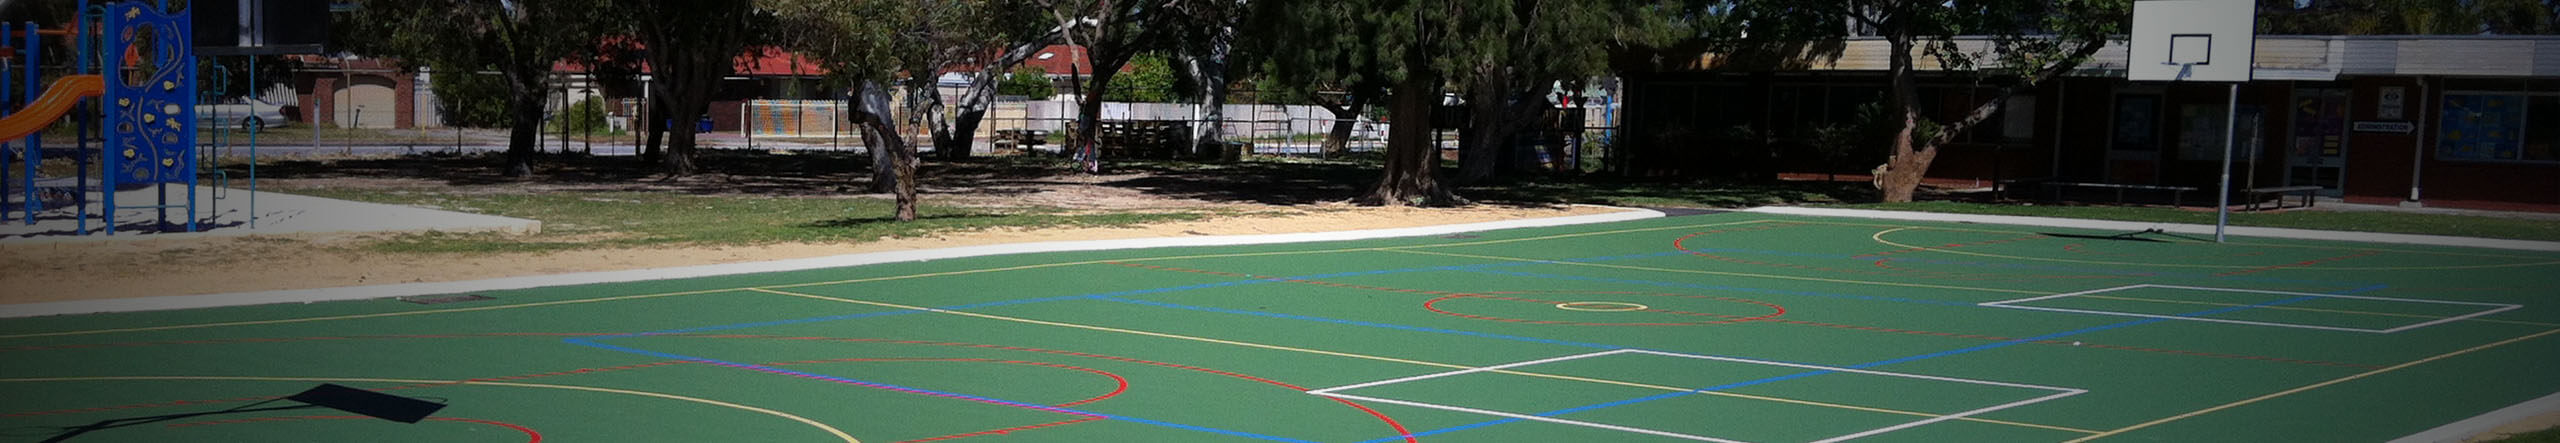 multi play courts